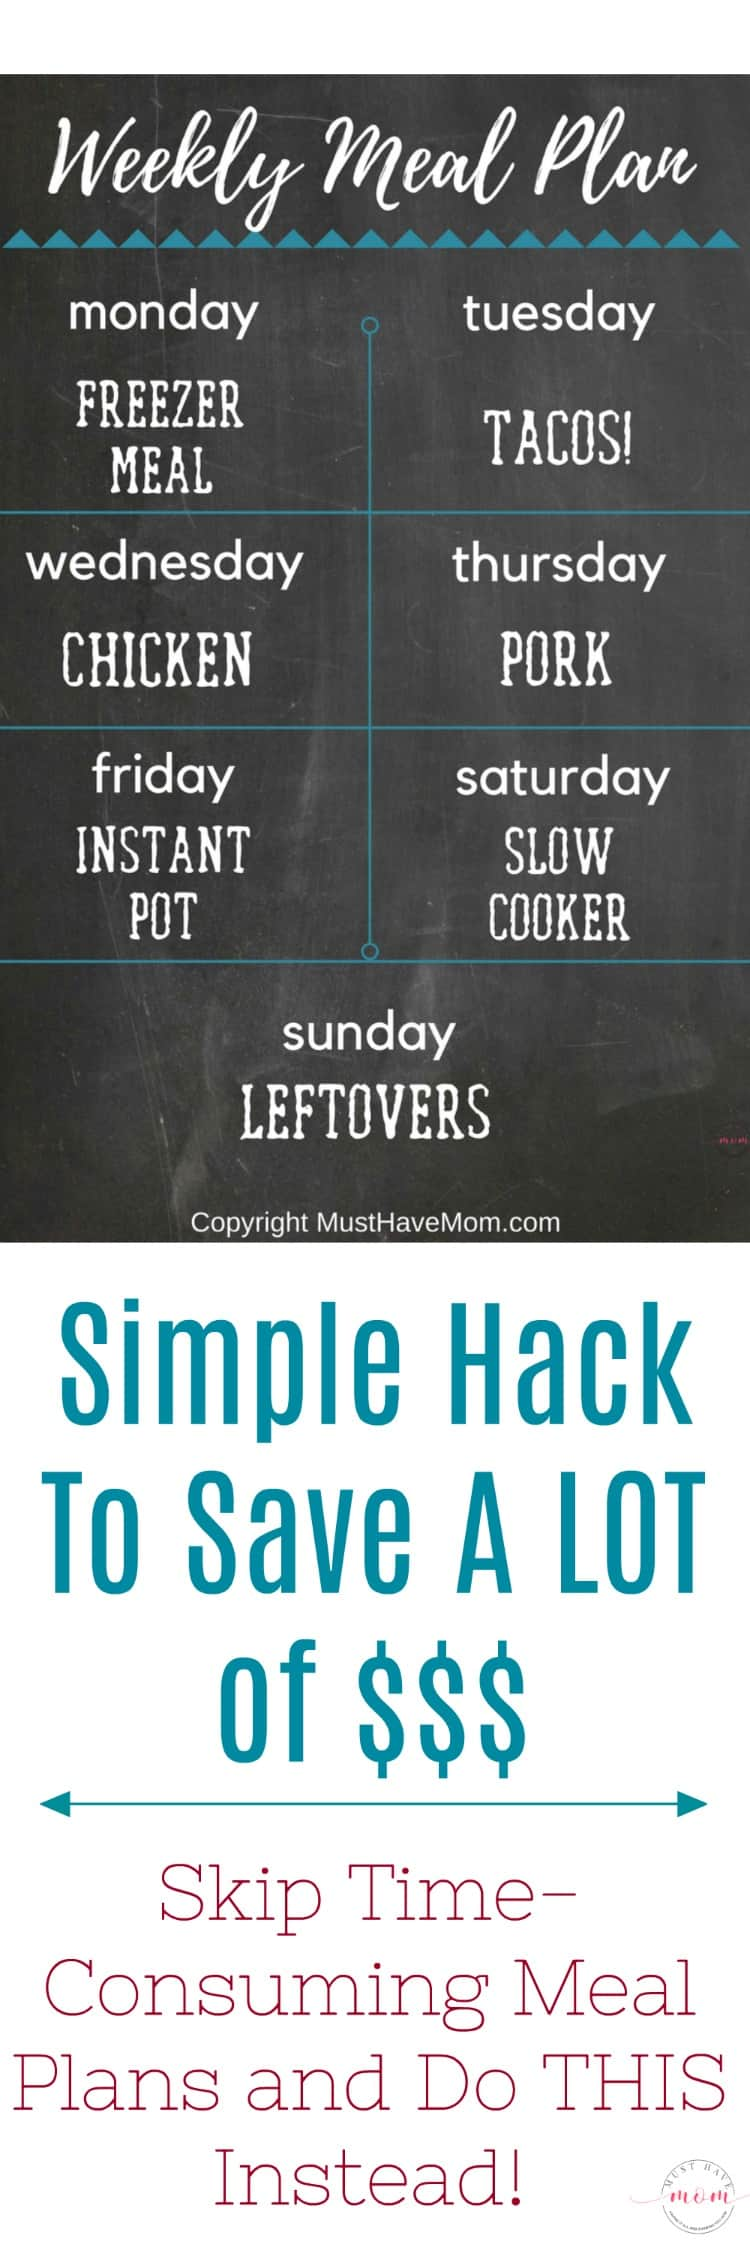 Easy weekly meal plan hack that saves tons of money and time! Quit wasting time meal planning and do this instead!